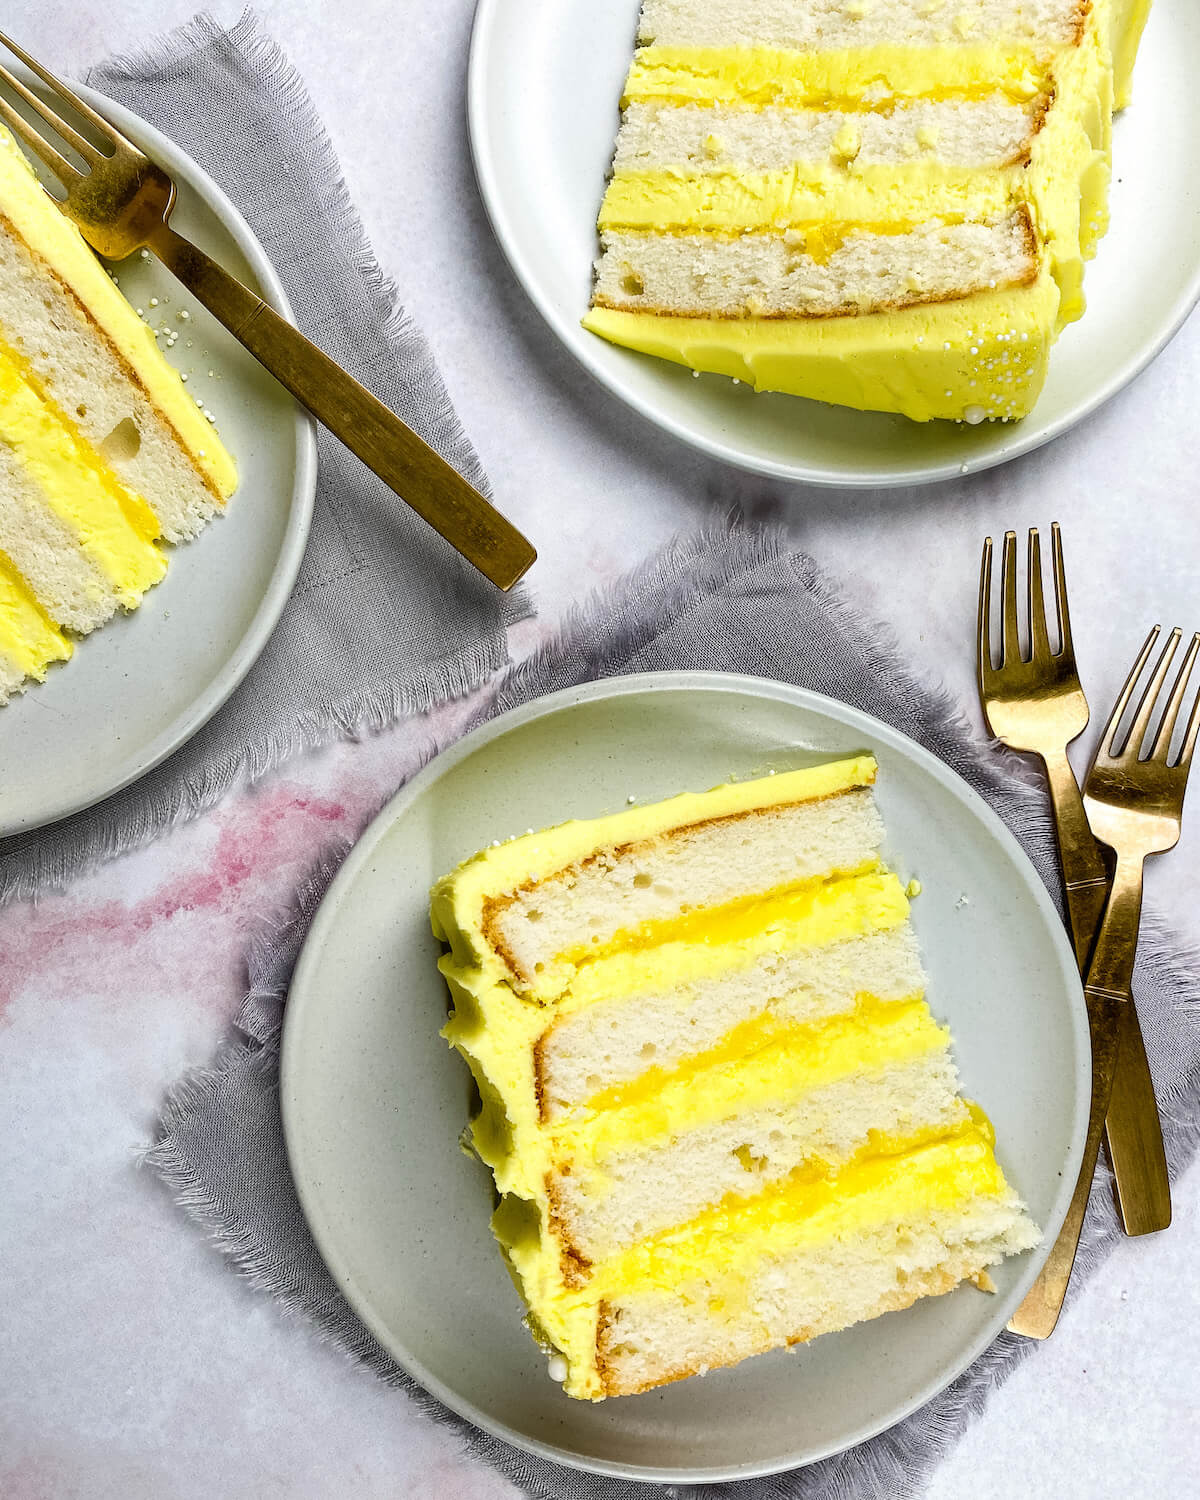 white cake with lemon curd and frosting sliced on plates